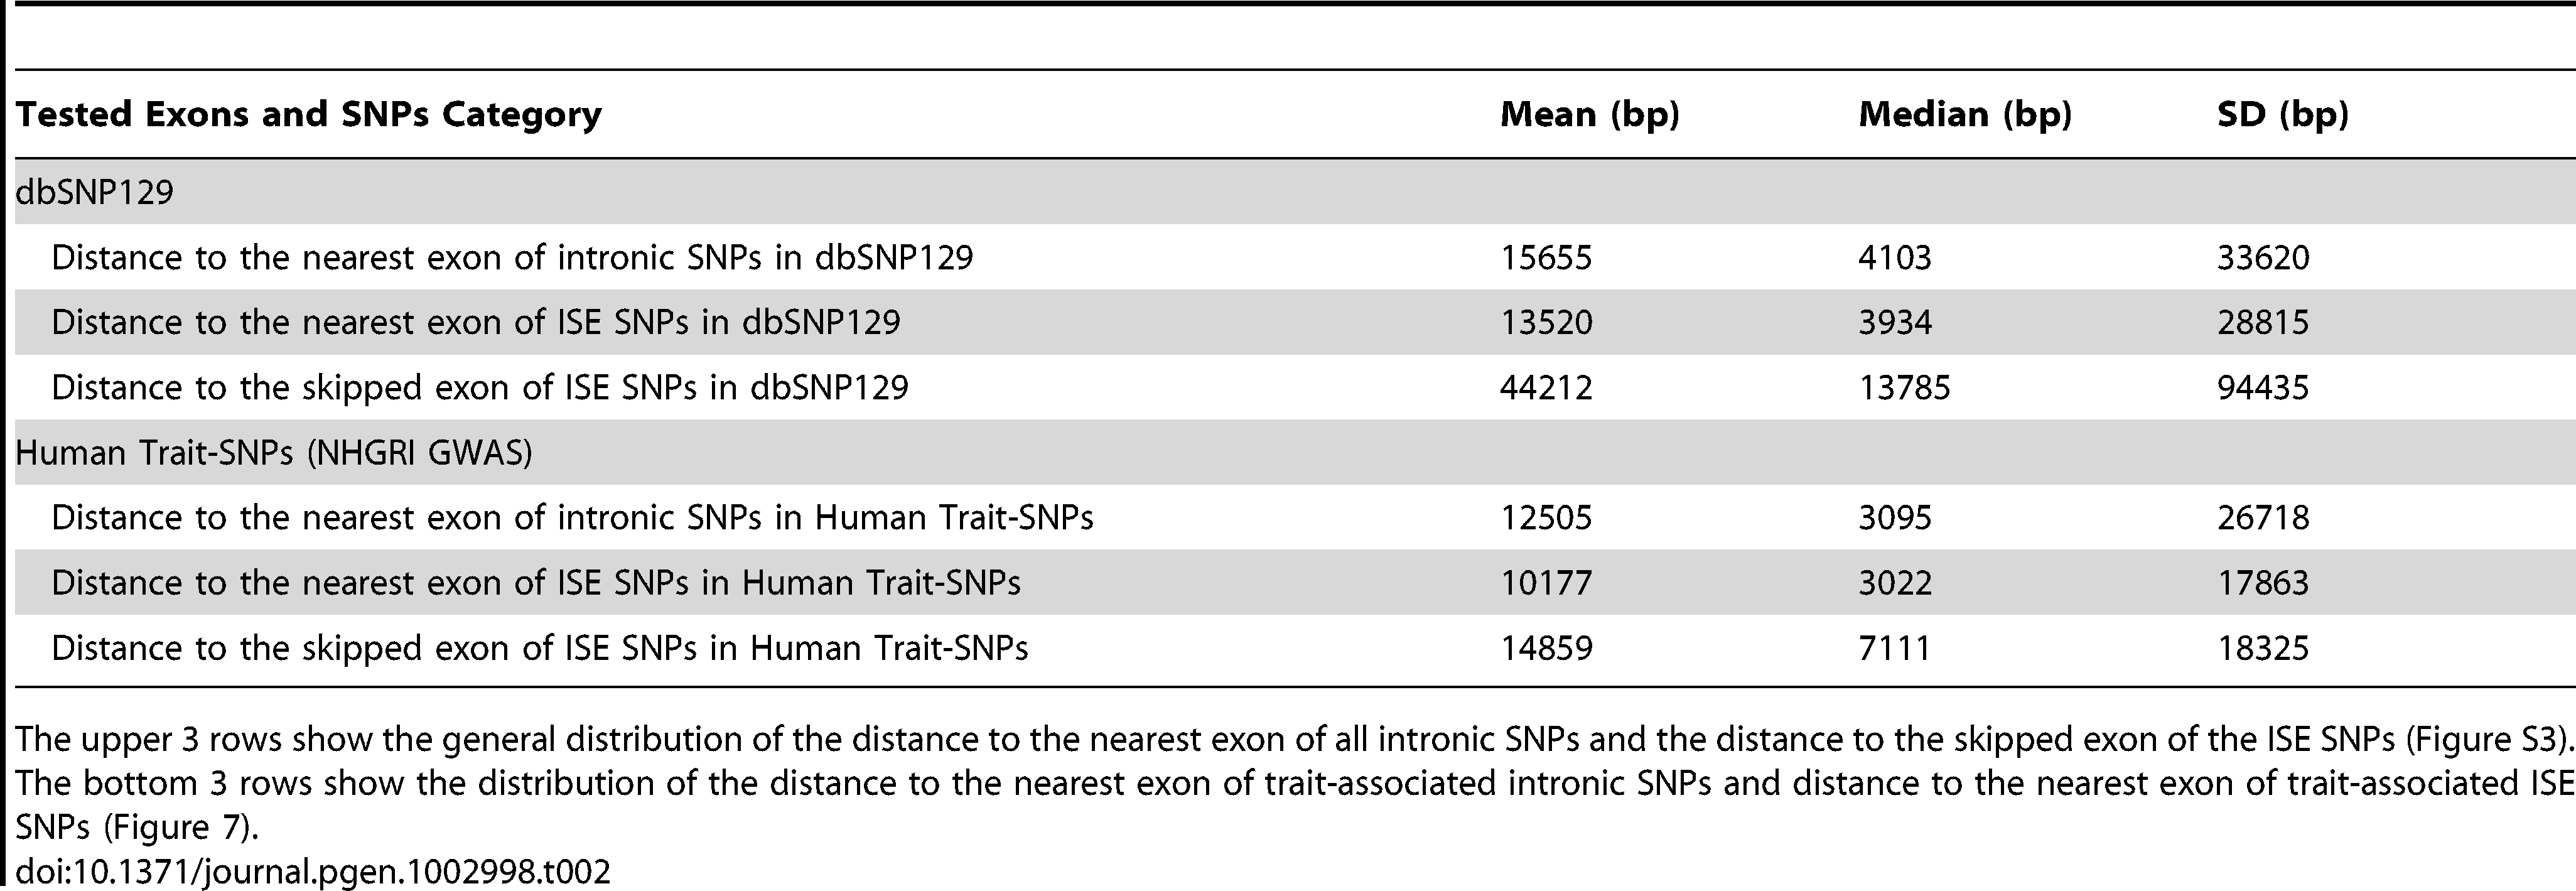 Distance to the Nearest Exon of Intronic SNPs Tends to Be Smaller Than the Distance to the Skipped Exon of ISE SNPs.